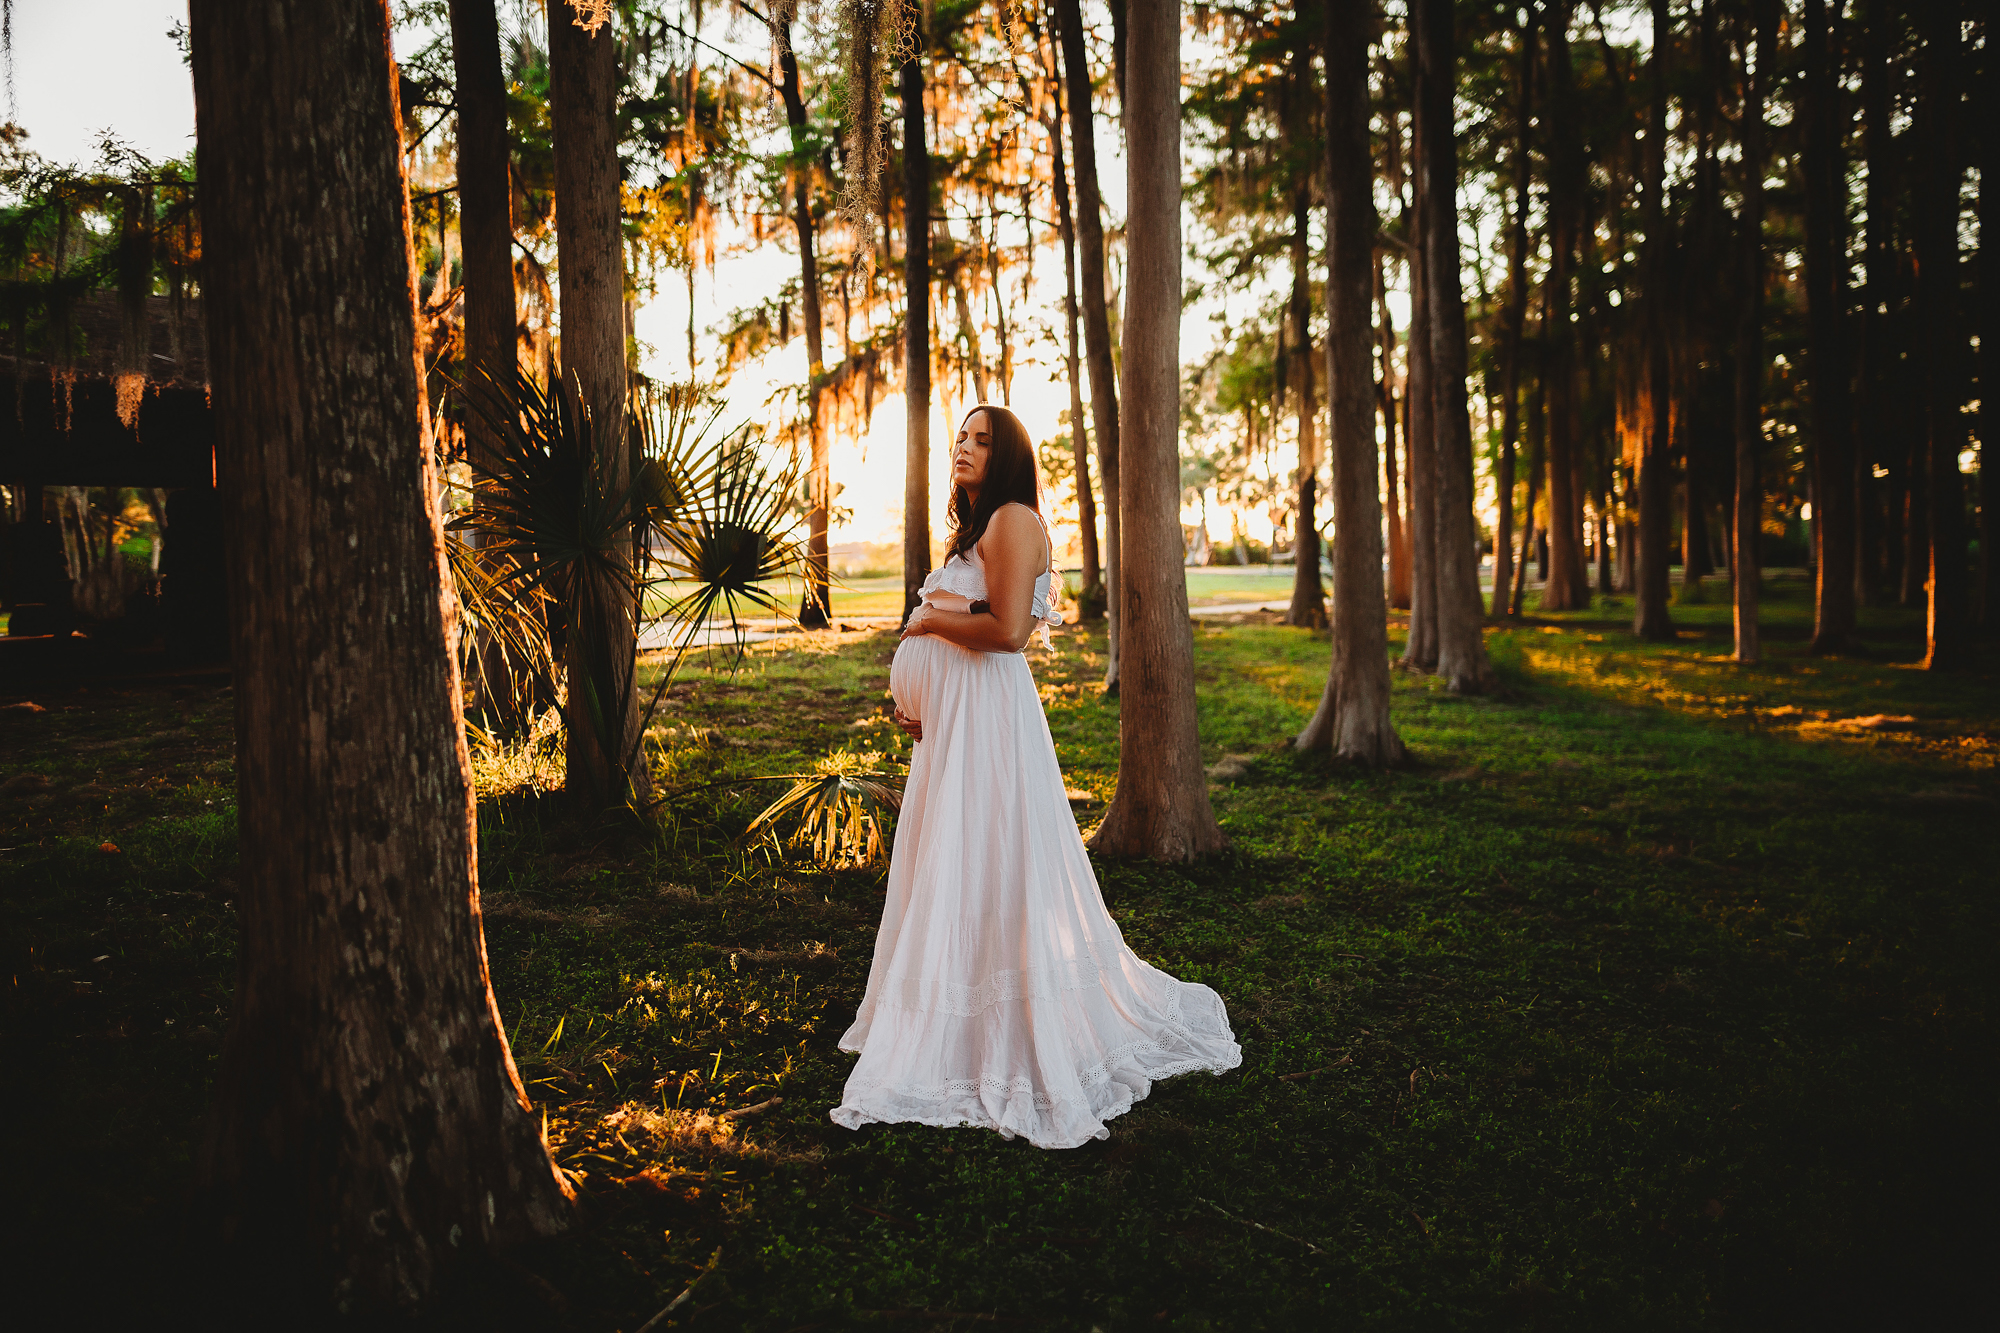 enchanting maternity portraits in the forest at sundown. John chestnut sr park maternity photo shoot in white dress with sunshine glowing through the trees